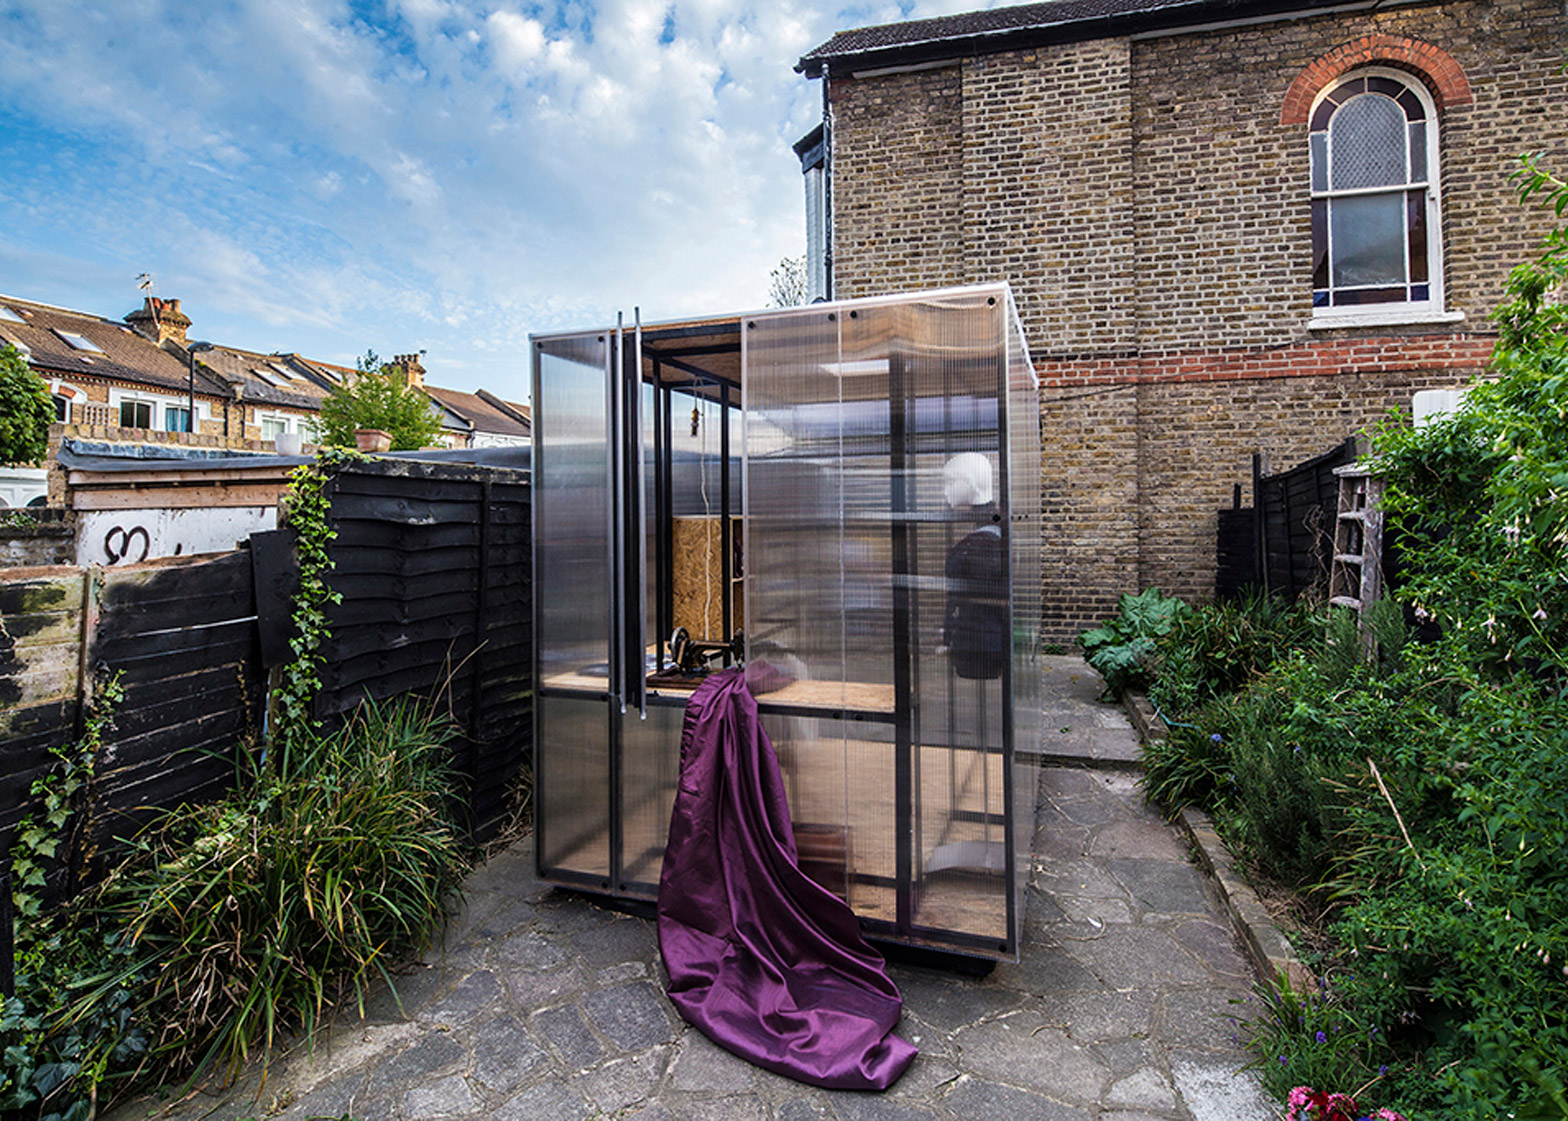 London architects create pop-up art studio to highlight the city's unaffordable rents